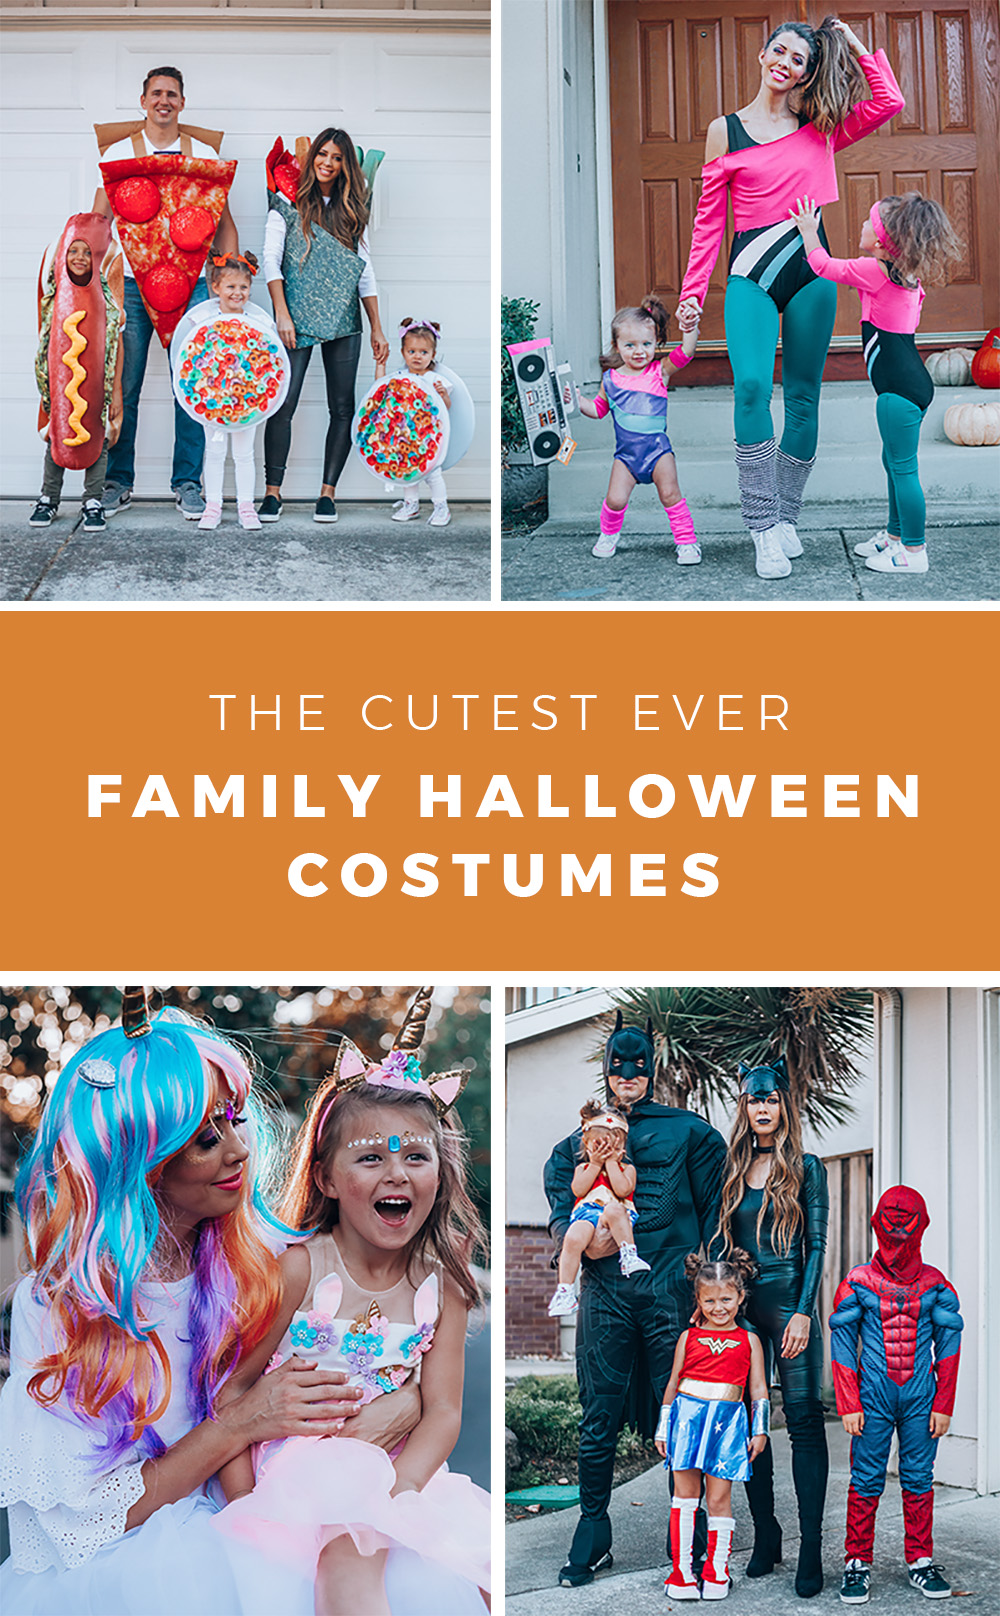 Family Of 4 Halloween Costumes 2019.4 Creative Family Halloween Costumes The Girl In The